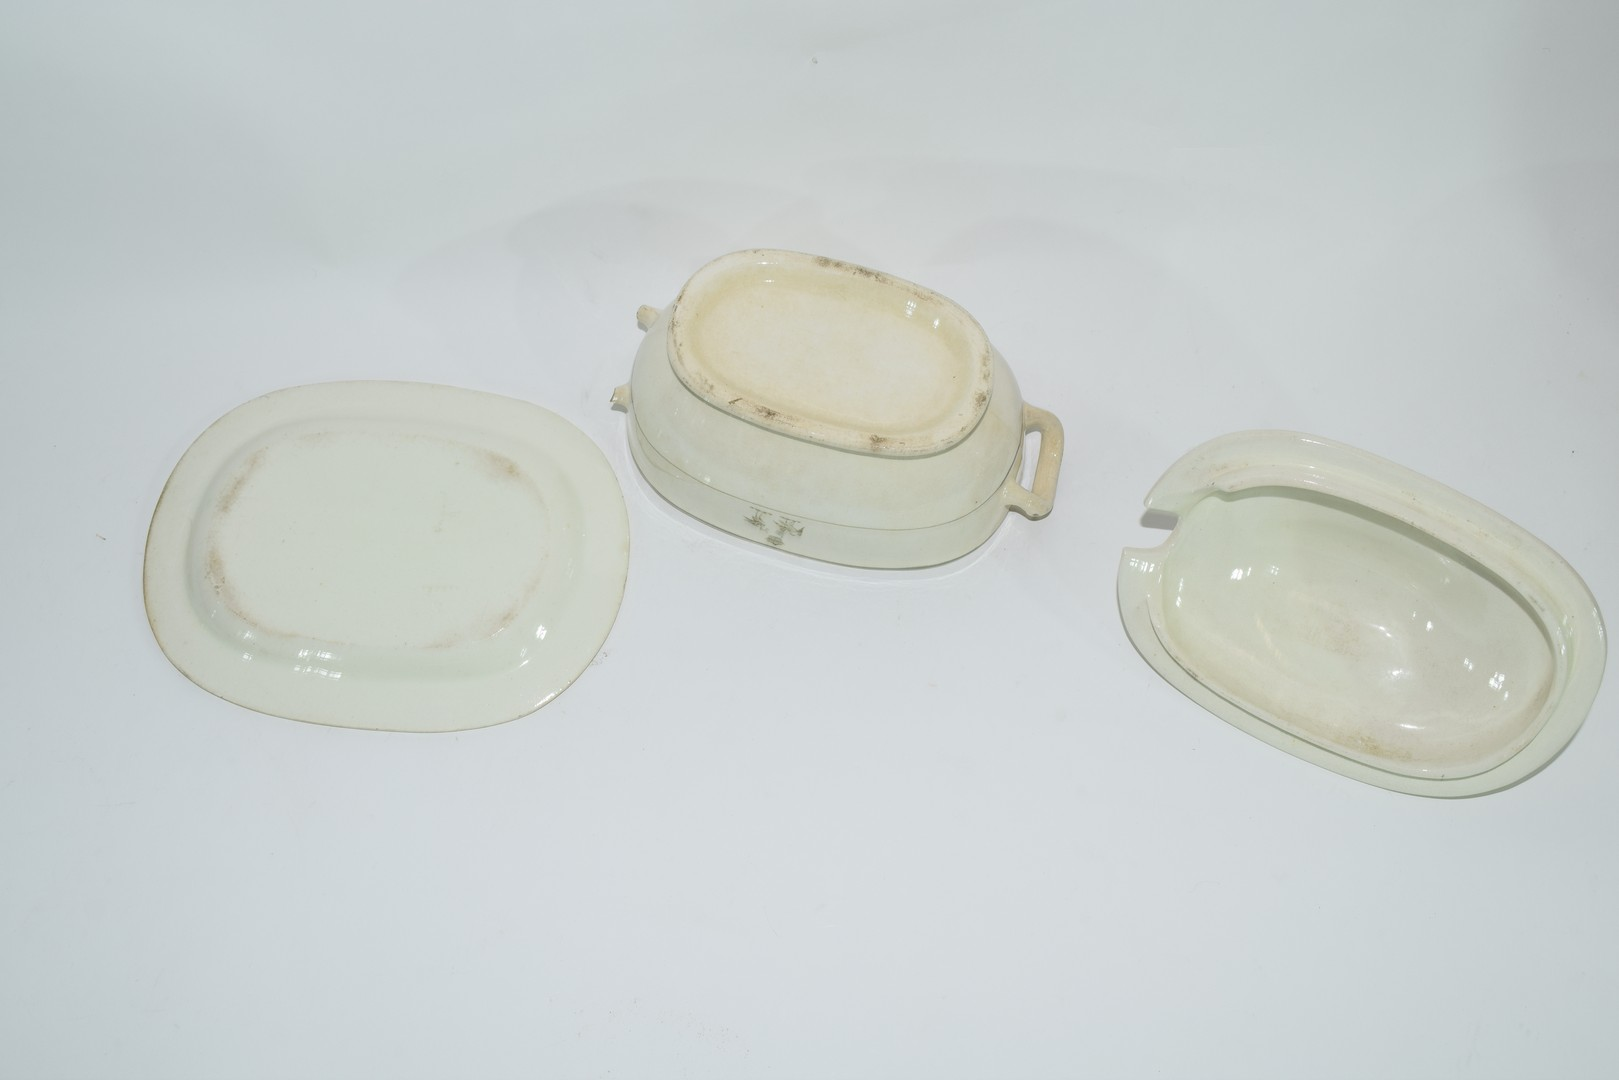 Late 18th century Rogers pearlware small tureen - Image 6 of 6